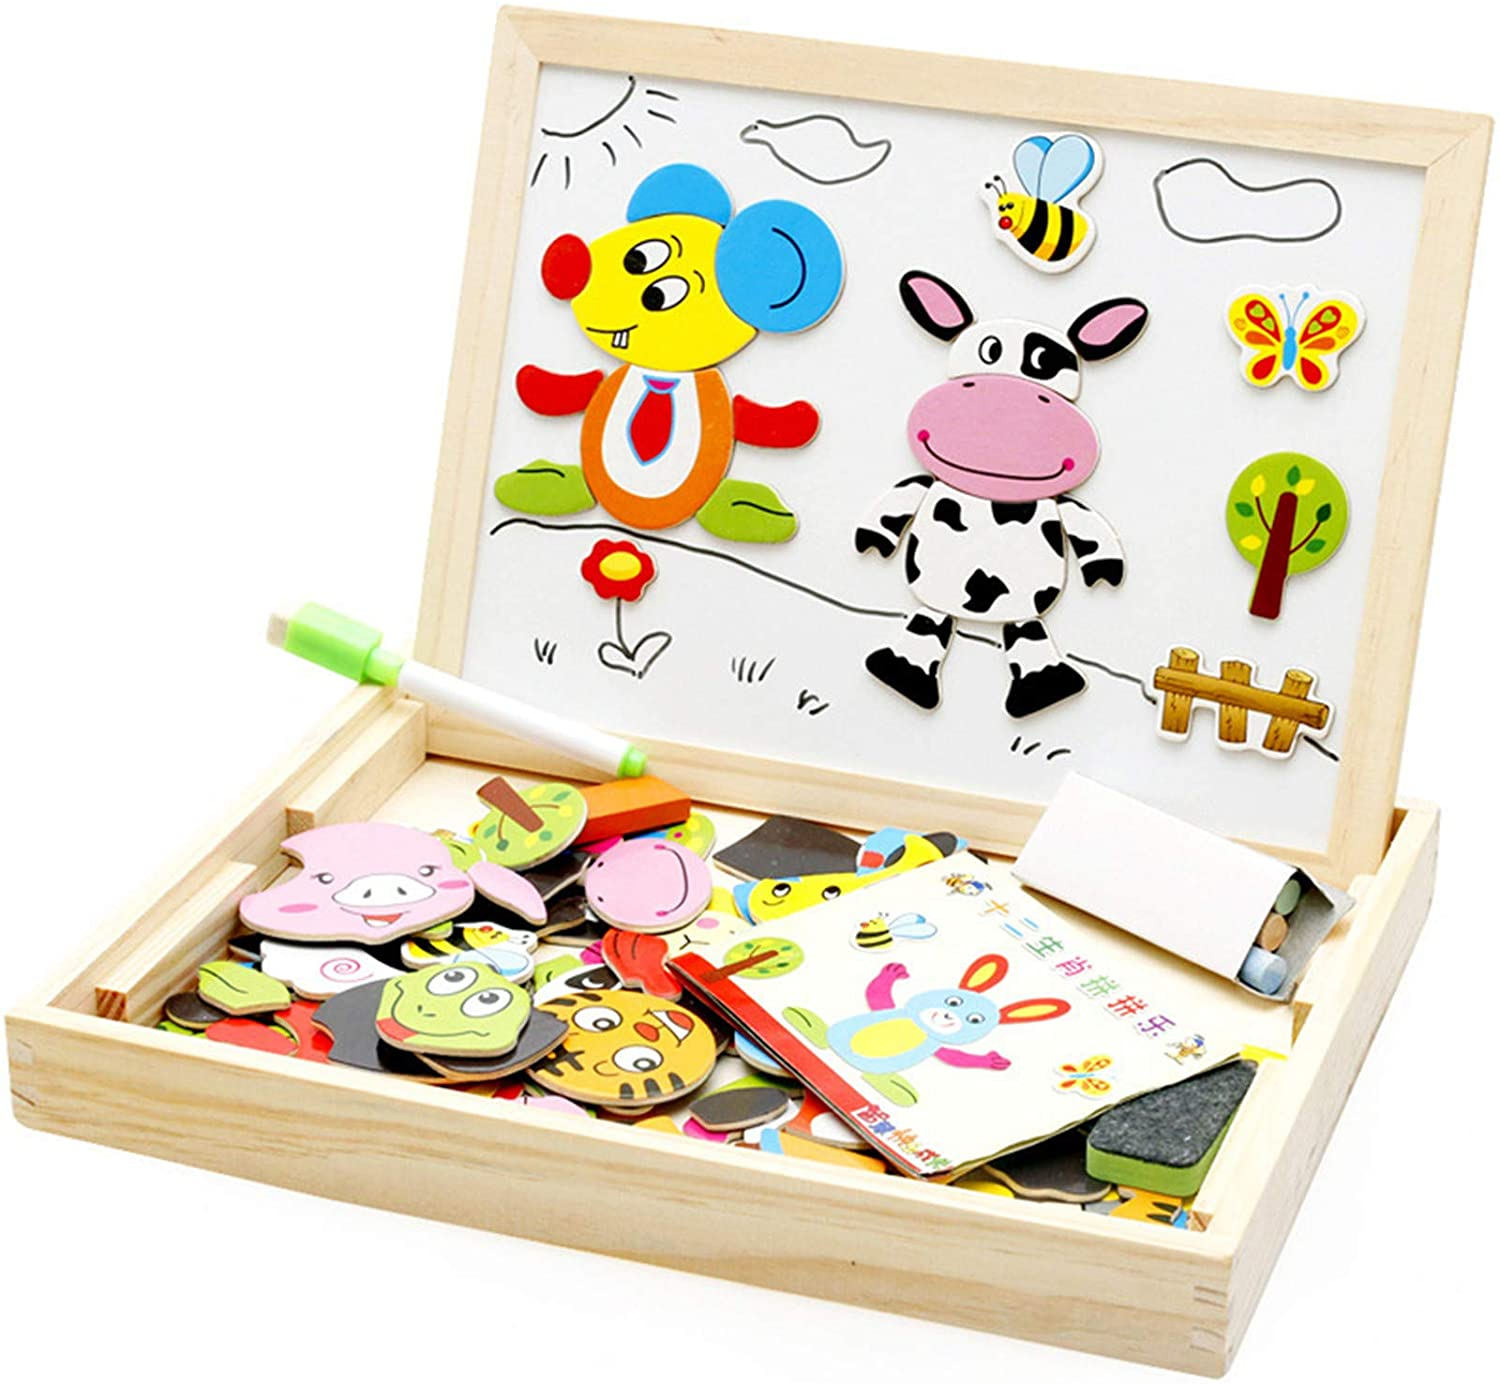 Wooden Magnetic Puzzle Drawing Board 1